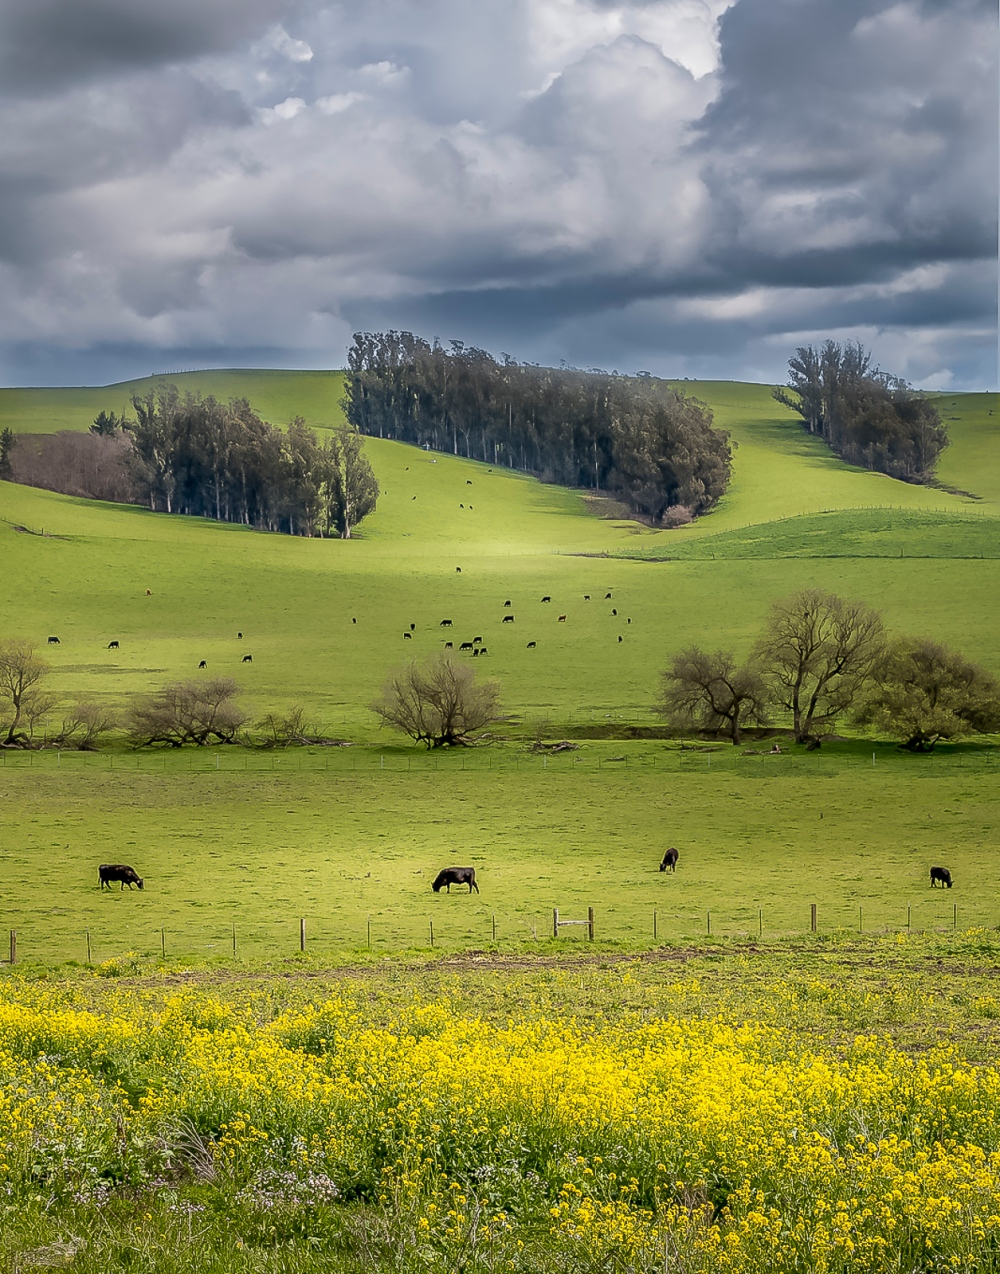 Pasture off of Bloomfield Road in Bloomfield, Sonoma County, California March 17, 2018